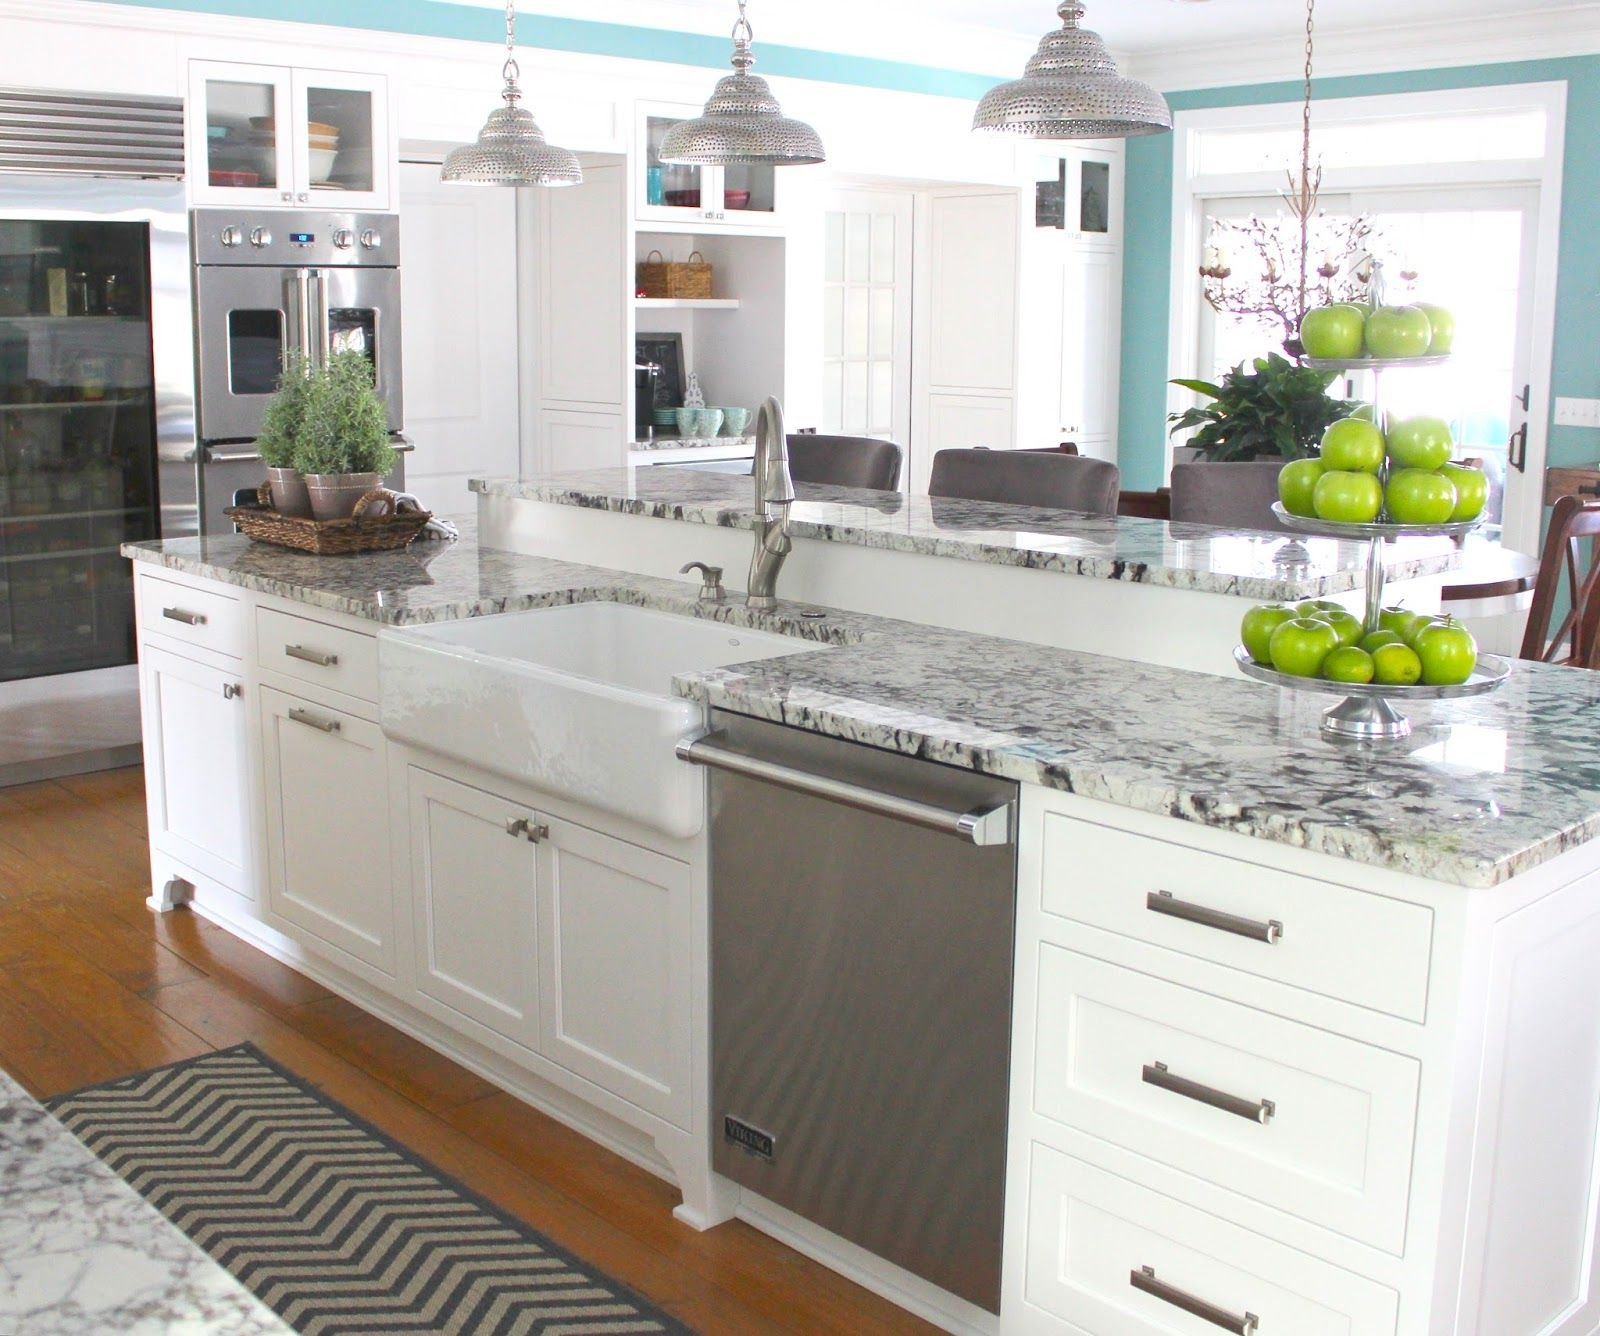 The Yellow Cape Cod Dramatic Kitchen Makeover Reveal~Before And After